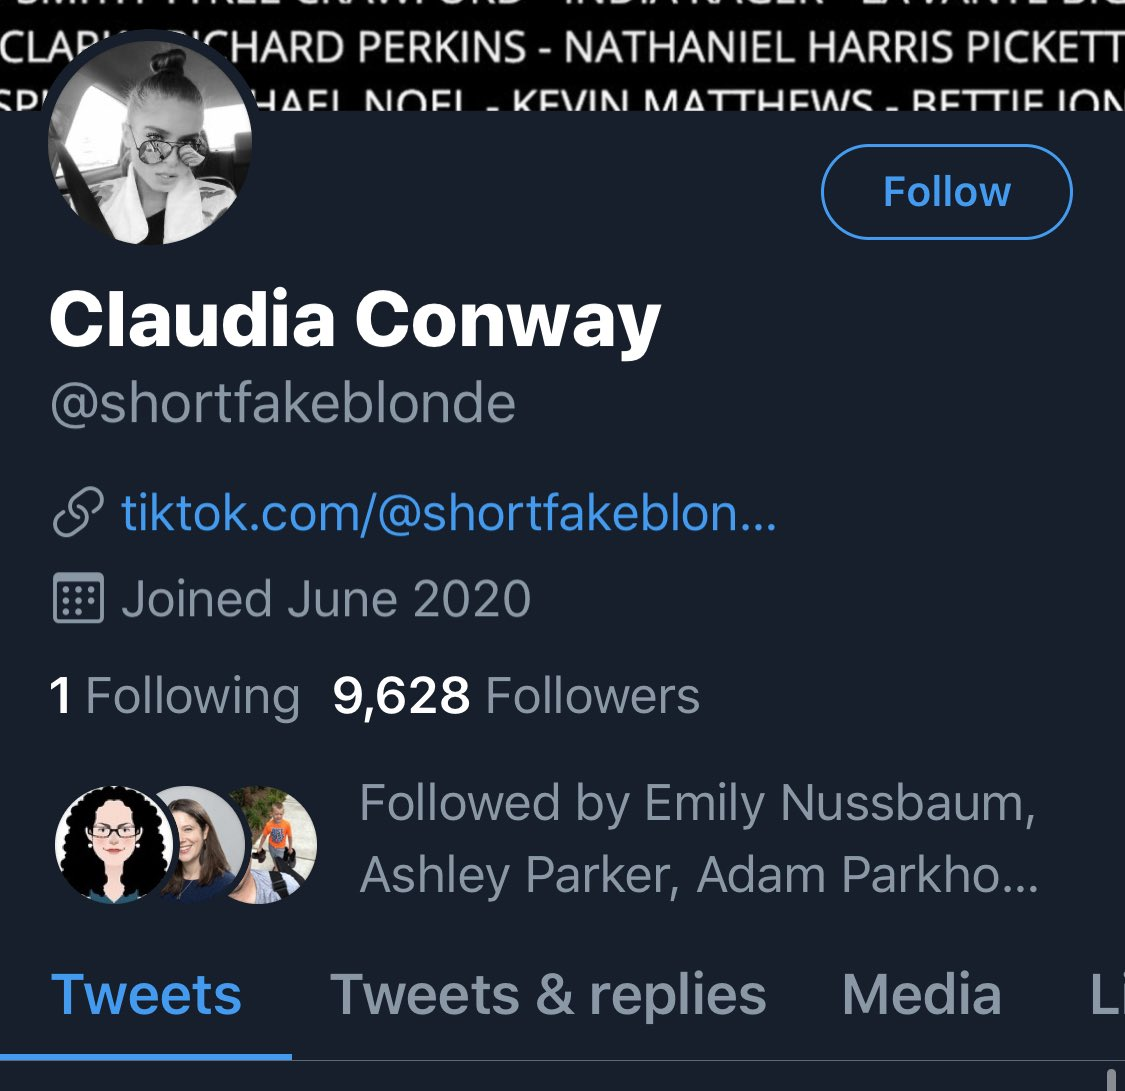 George Conway On Twitter This Account Shortfakeblonde Is A Fake Account Purporting To Be My Daughter S Please Report It So That It May Be Taken Down Thank You Https T Co R5i3kbqap2